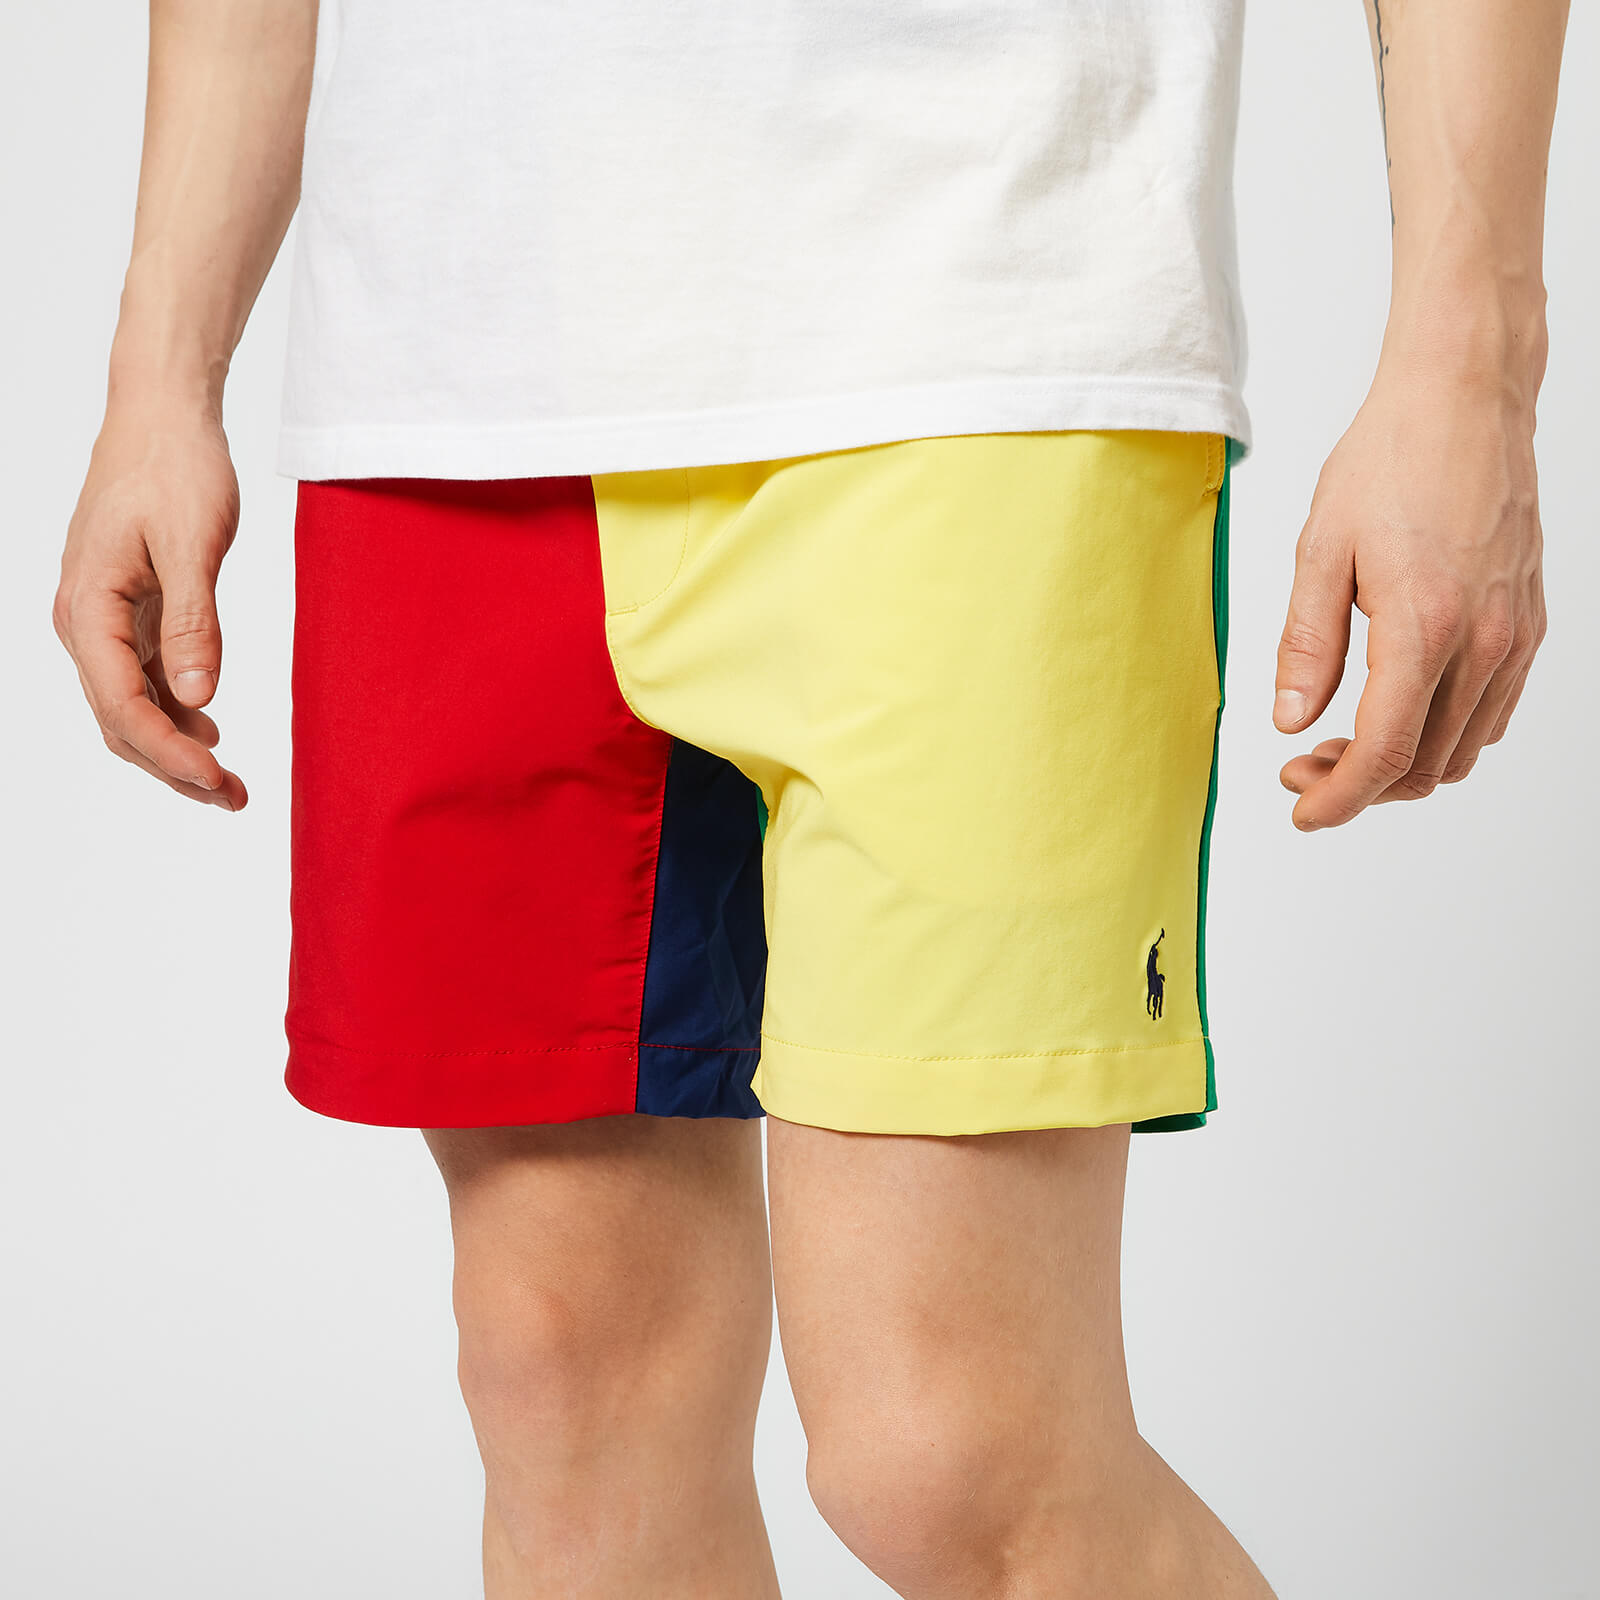 9dc695e7b4 Polo Ralph Lauren Men's Prepster Colour Block Swim Shorts - Red/Yellow/Blue  - Free UK Delivery over £50